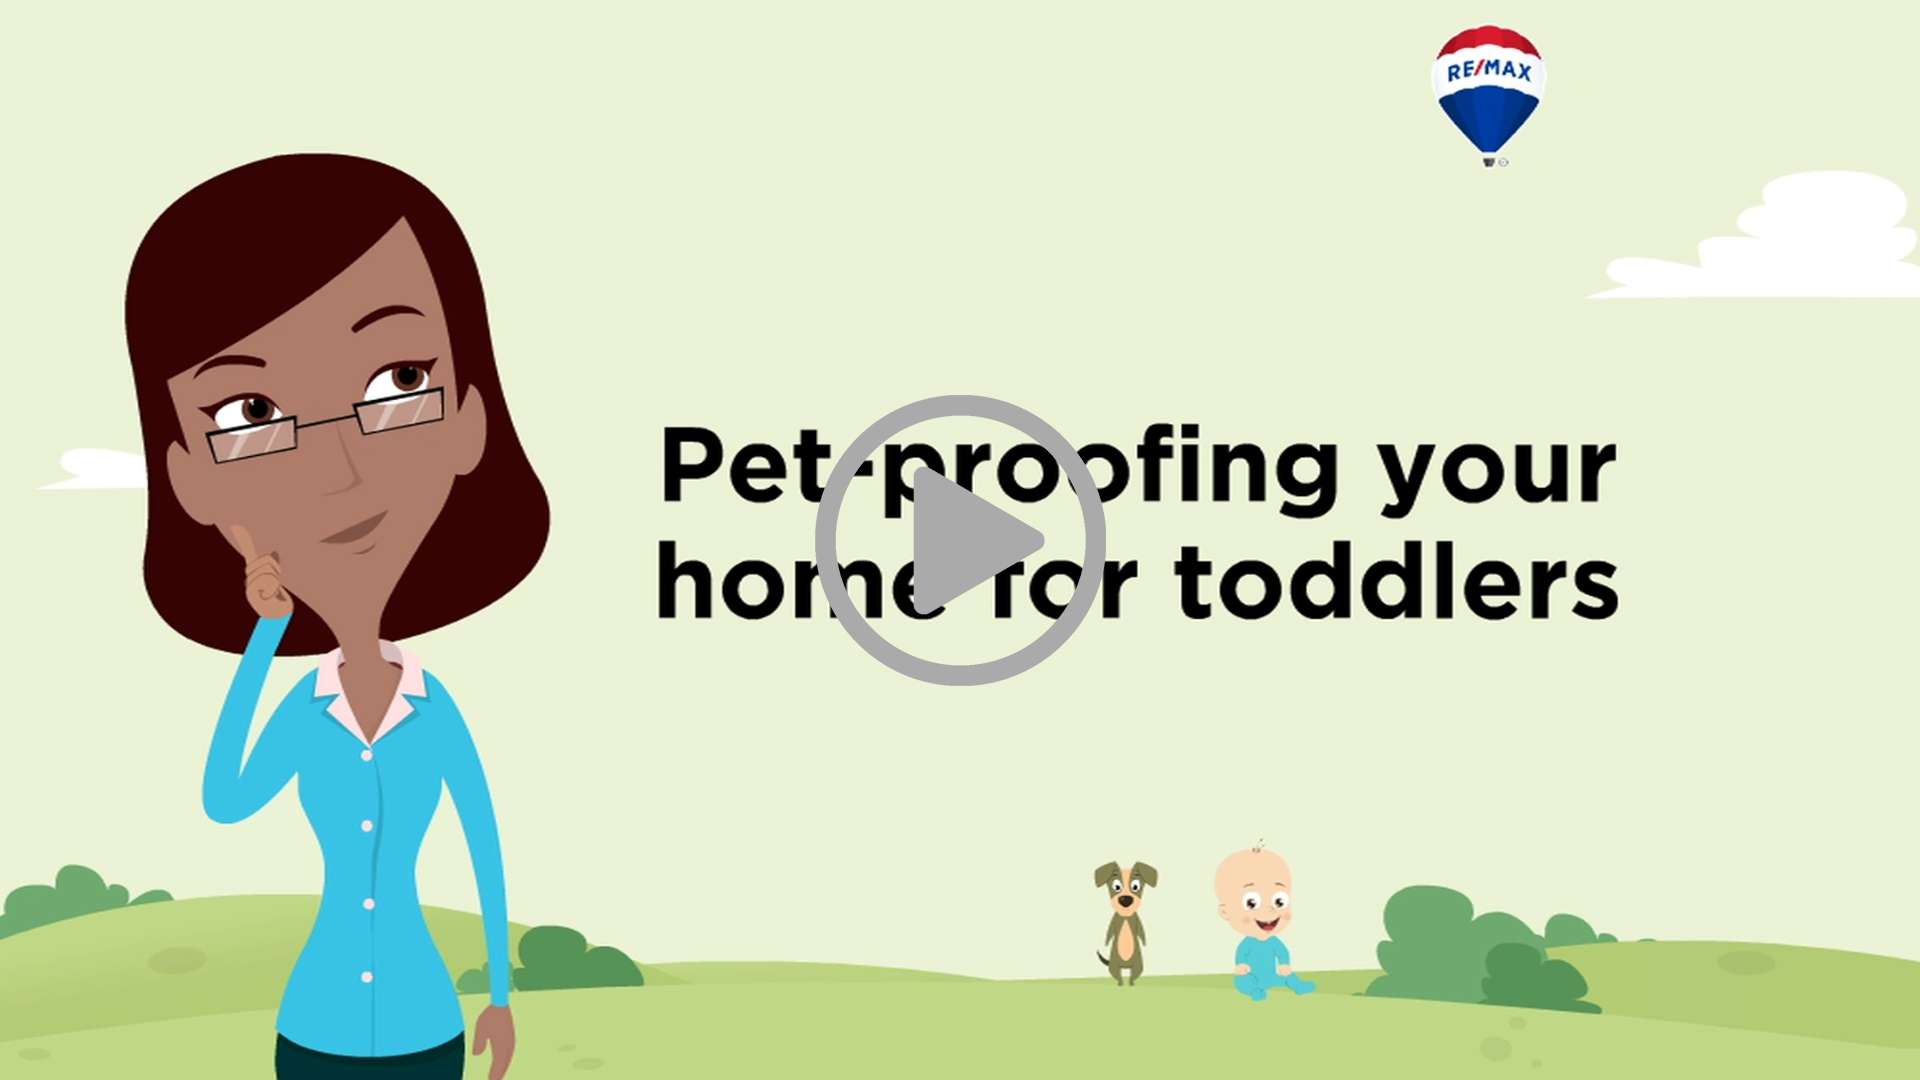 PET-PROOFING YOUR HOME FOR TODDLERS